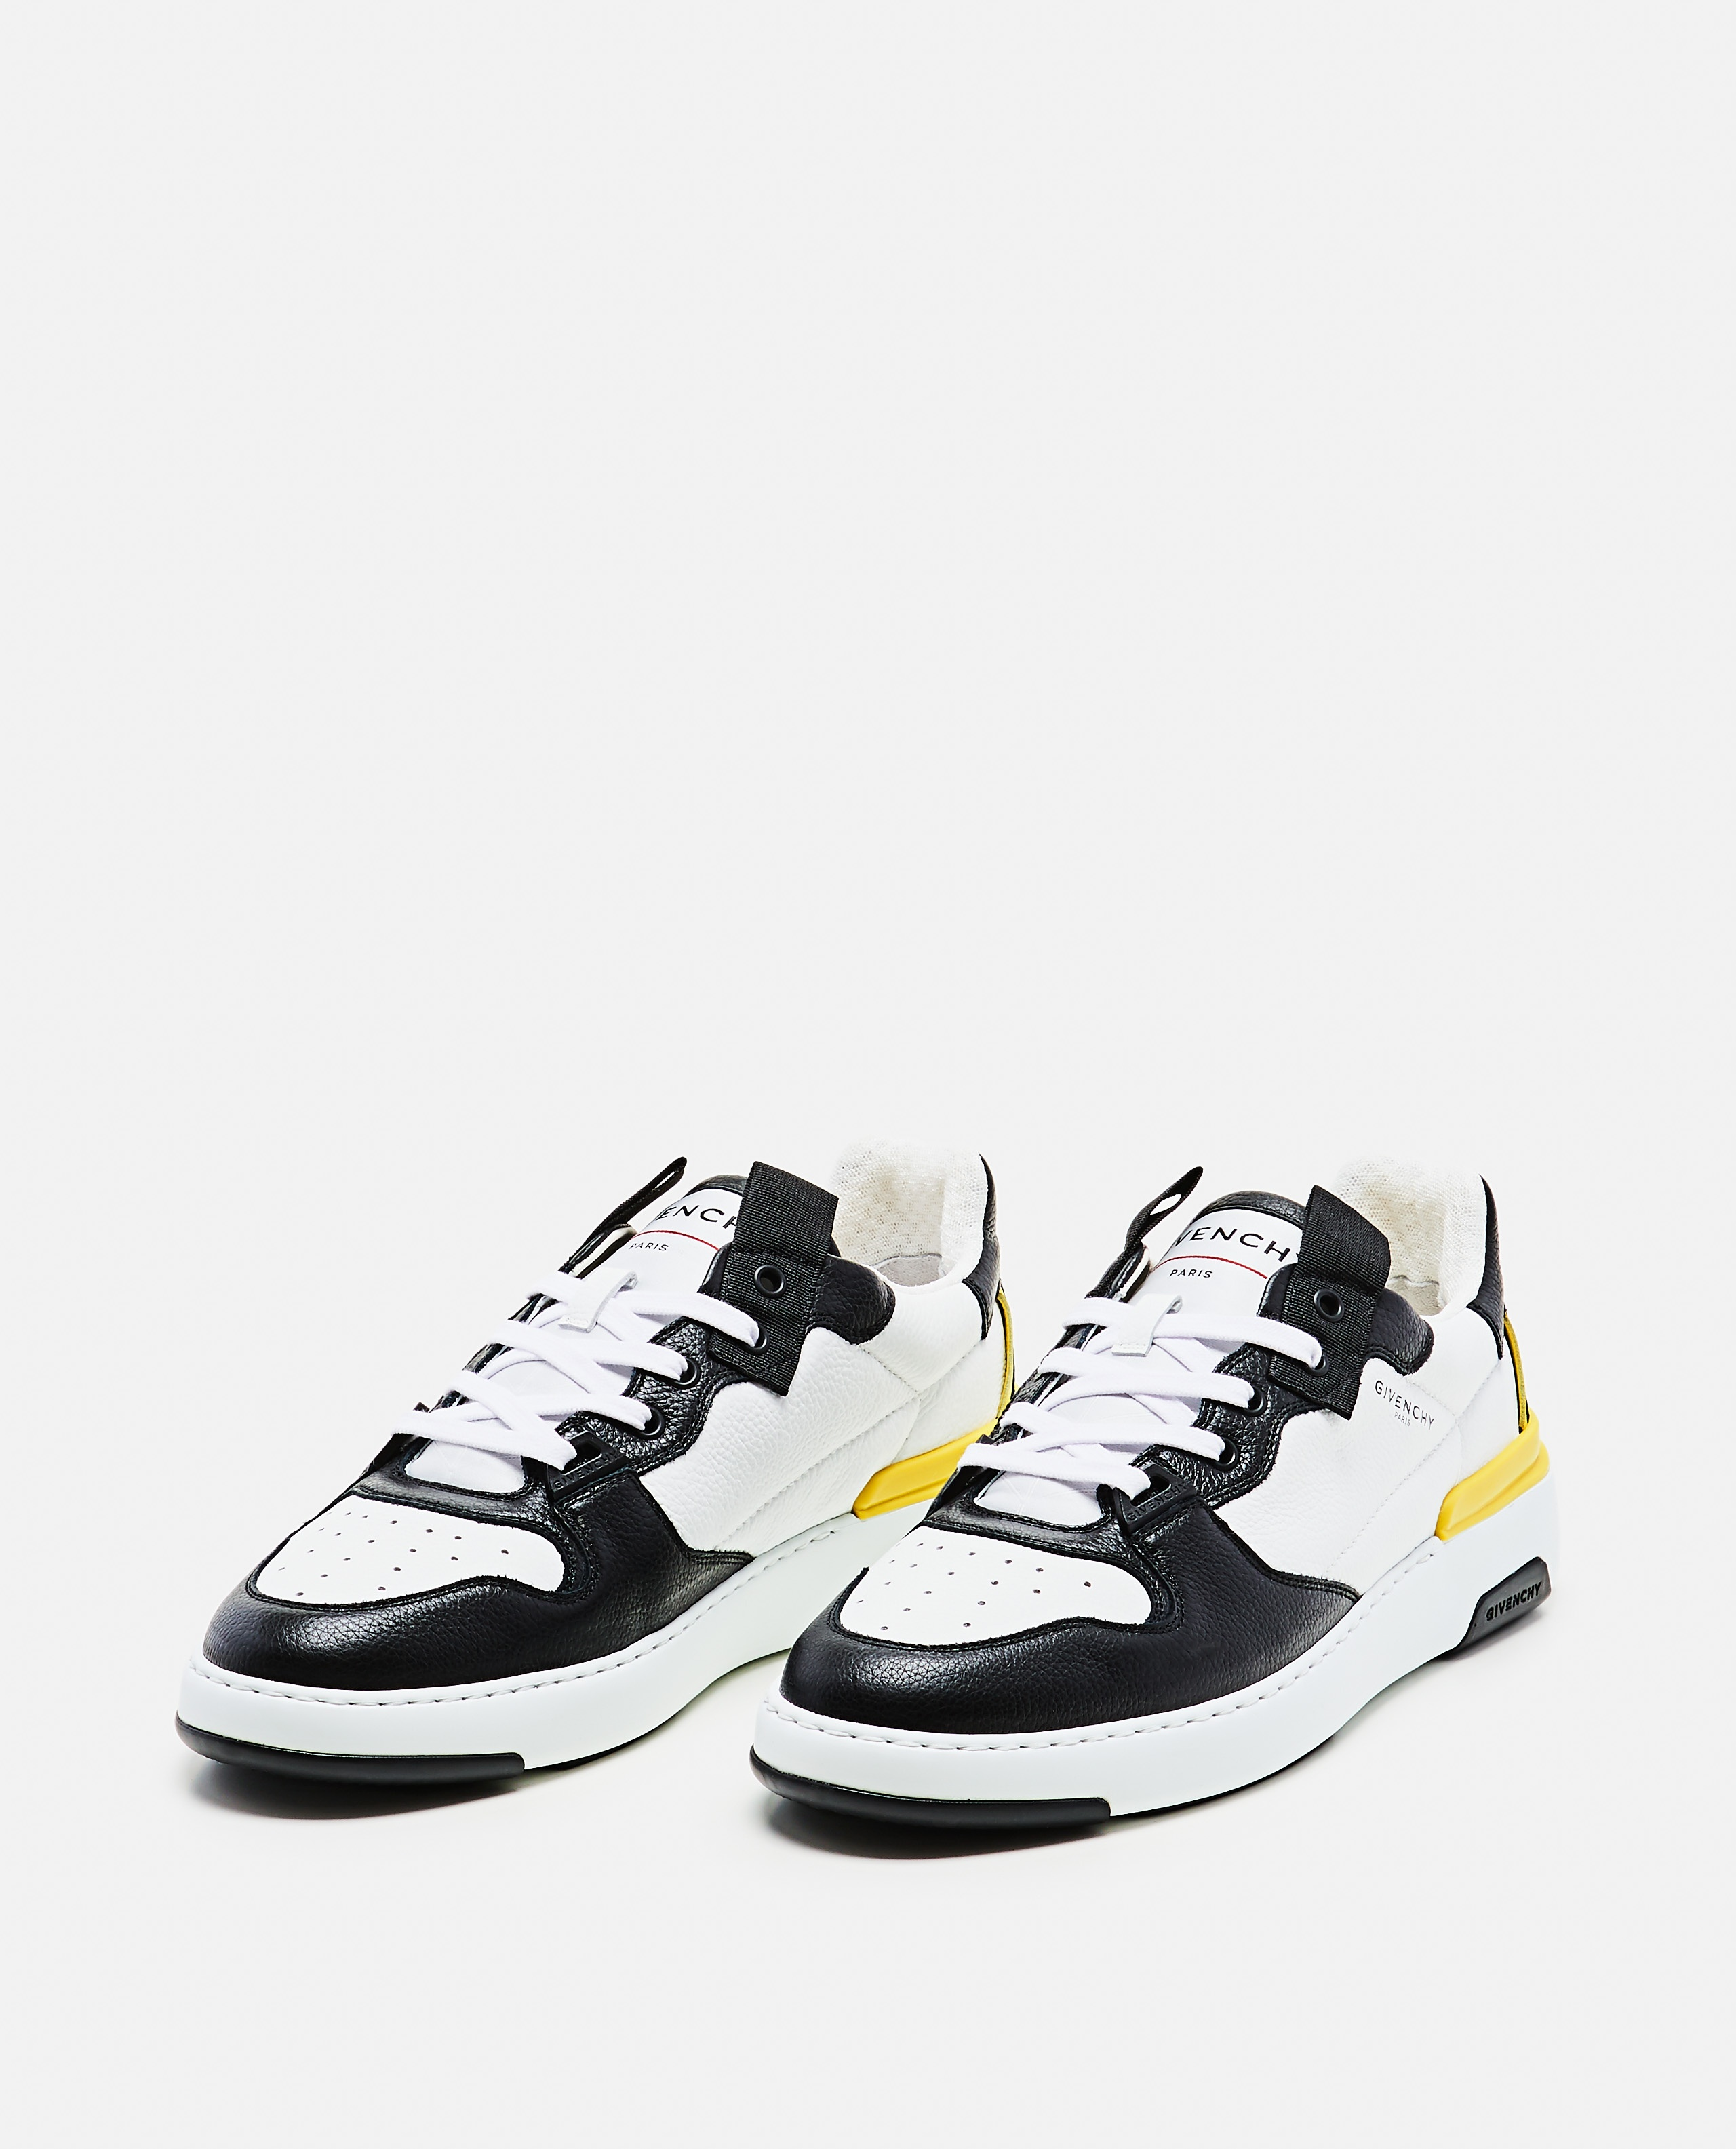 Sneakers WING SNEAKER LOW Men Givenchy 000253290037418 2